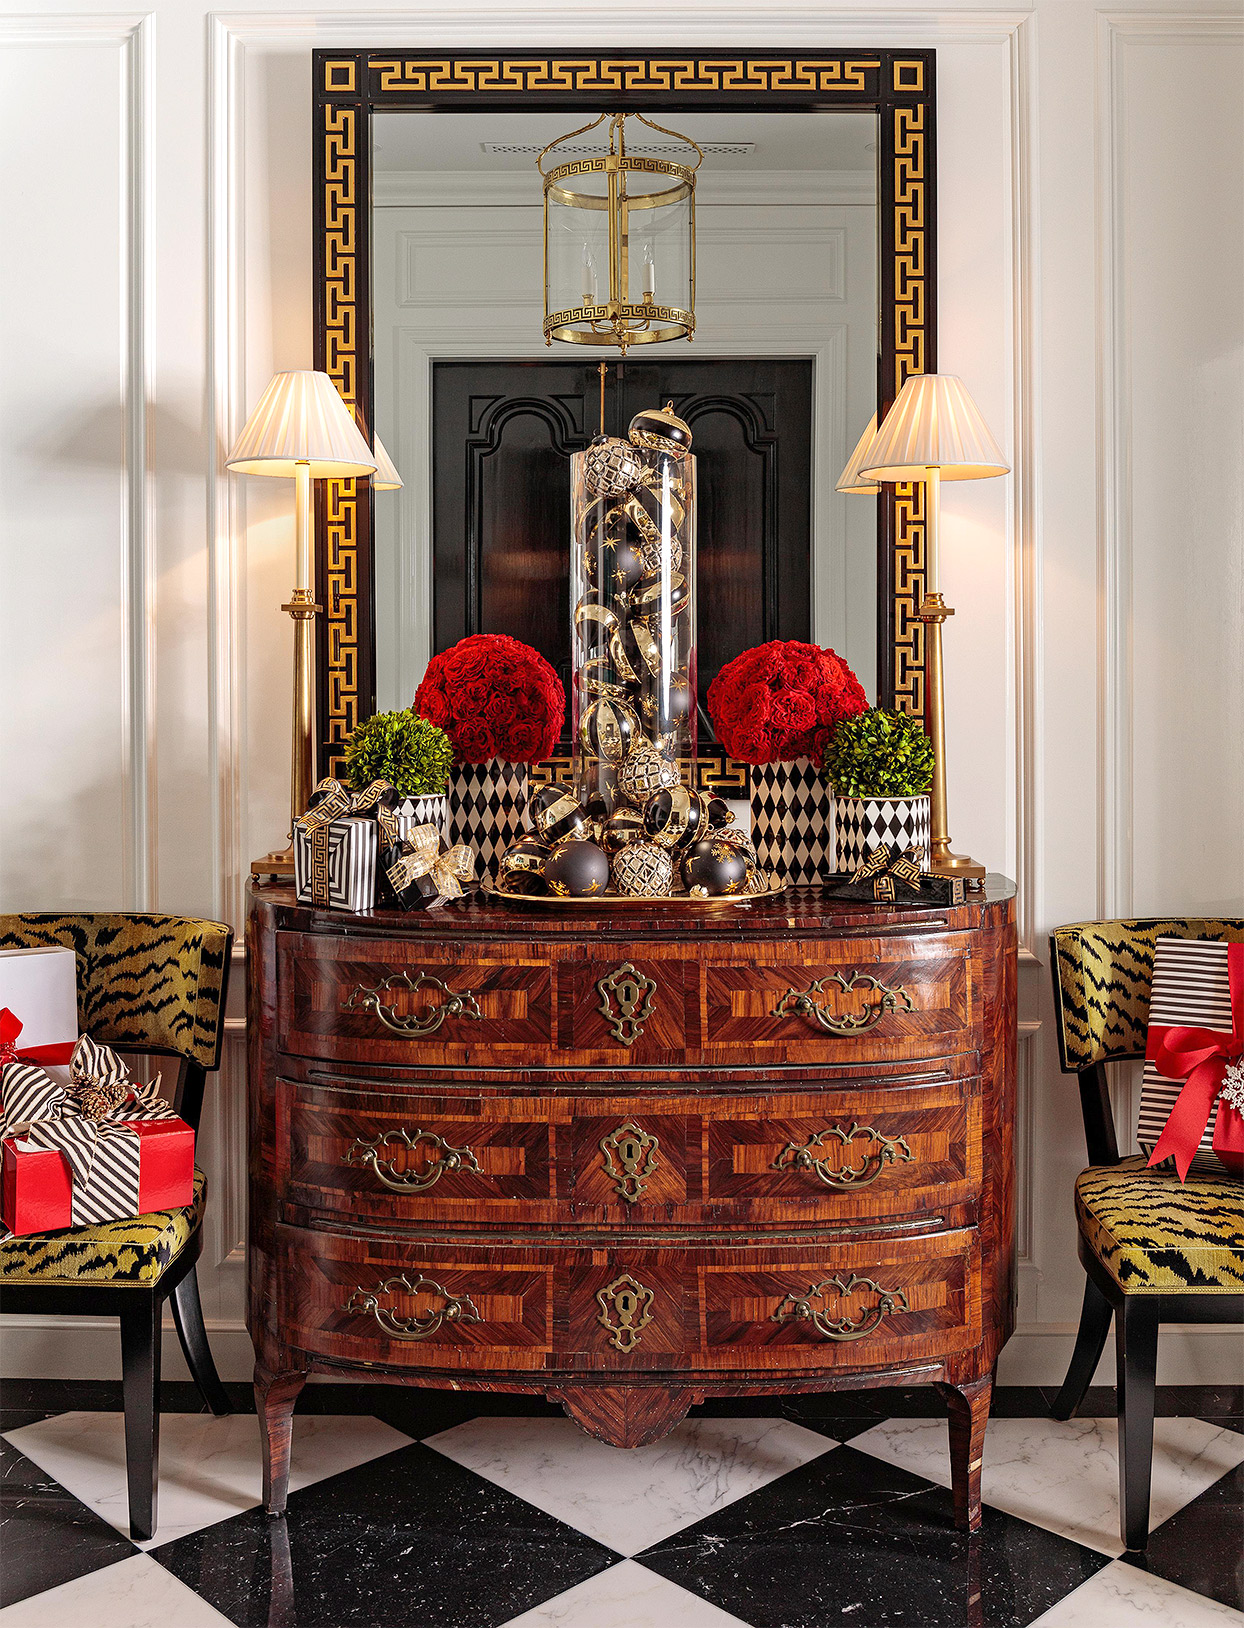 chest of drawers with mirror roses ornaments on display